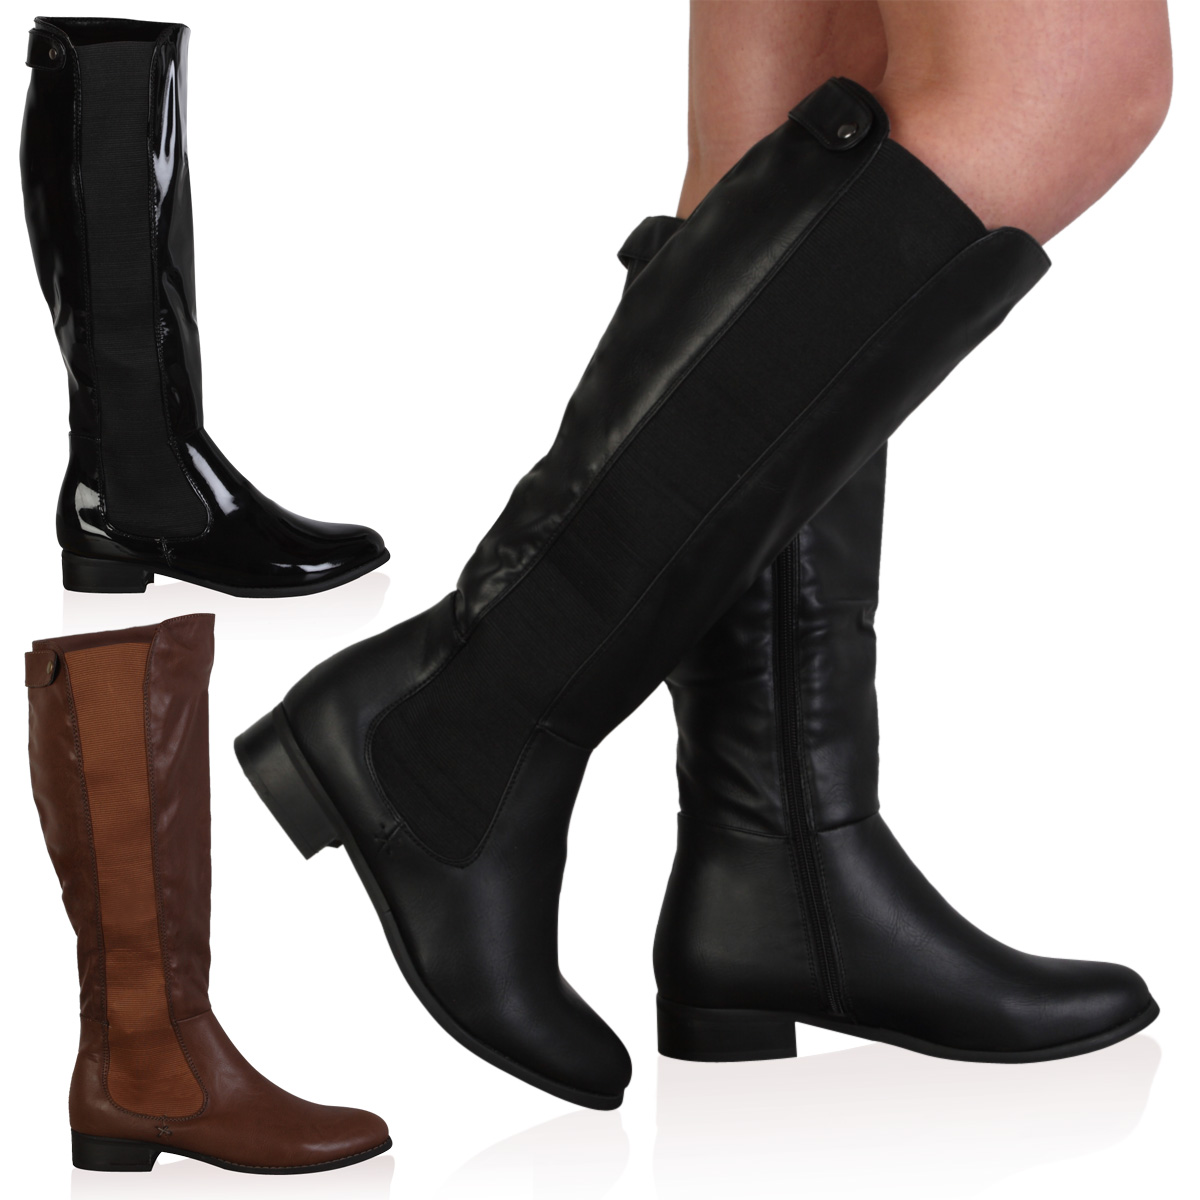 NEW WOMENS FAUX LEATHER LADIES FLAT LONG KNEE HIGH RIDING BOOTS ...